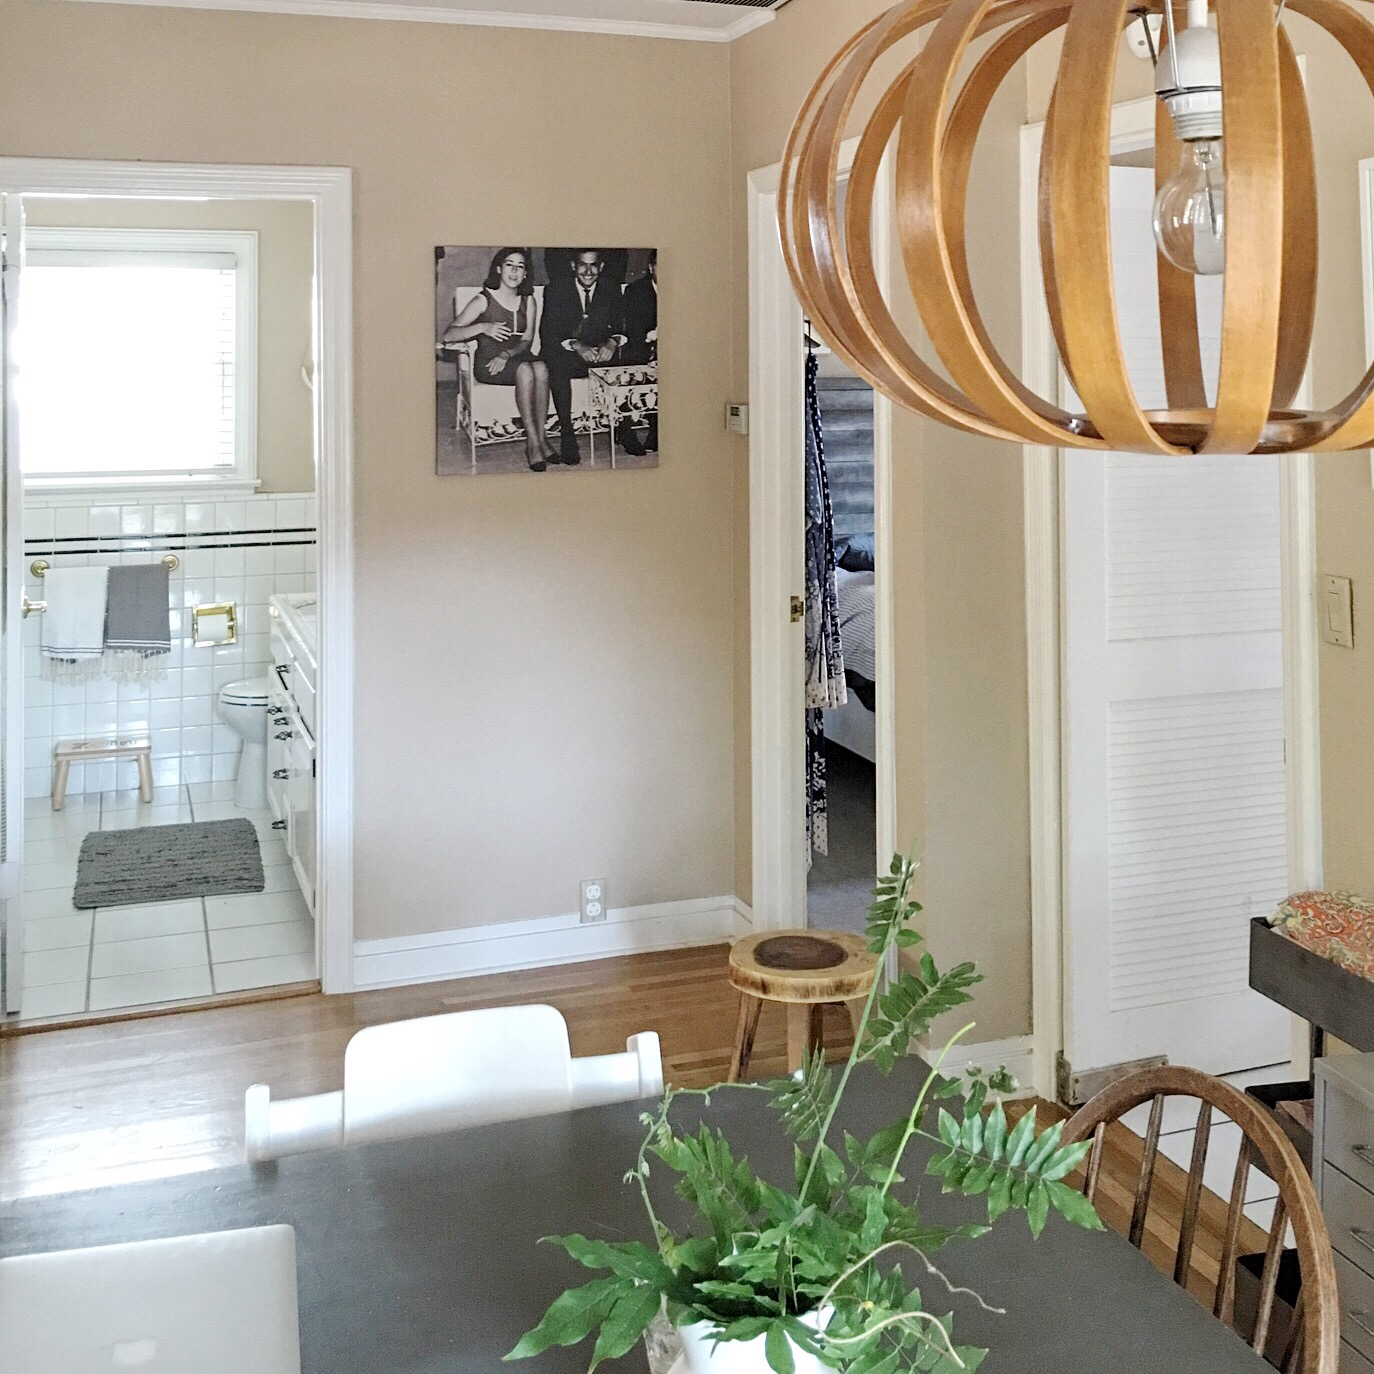 One of the couple's first home purchases: a West Elm light fixture sets the tone.